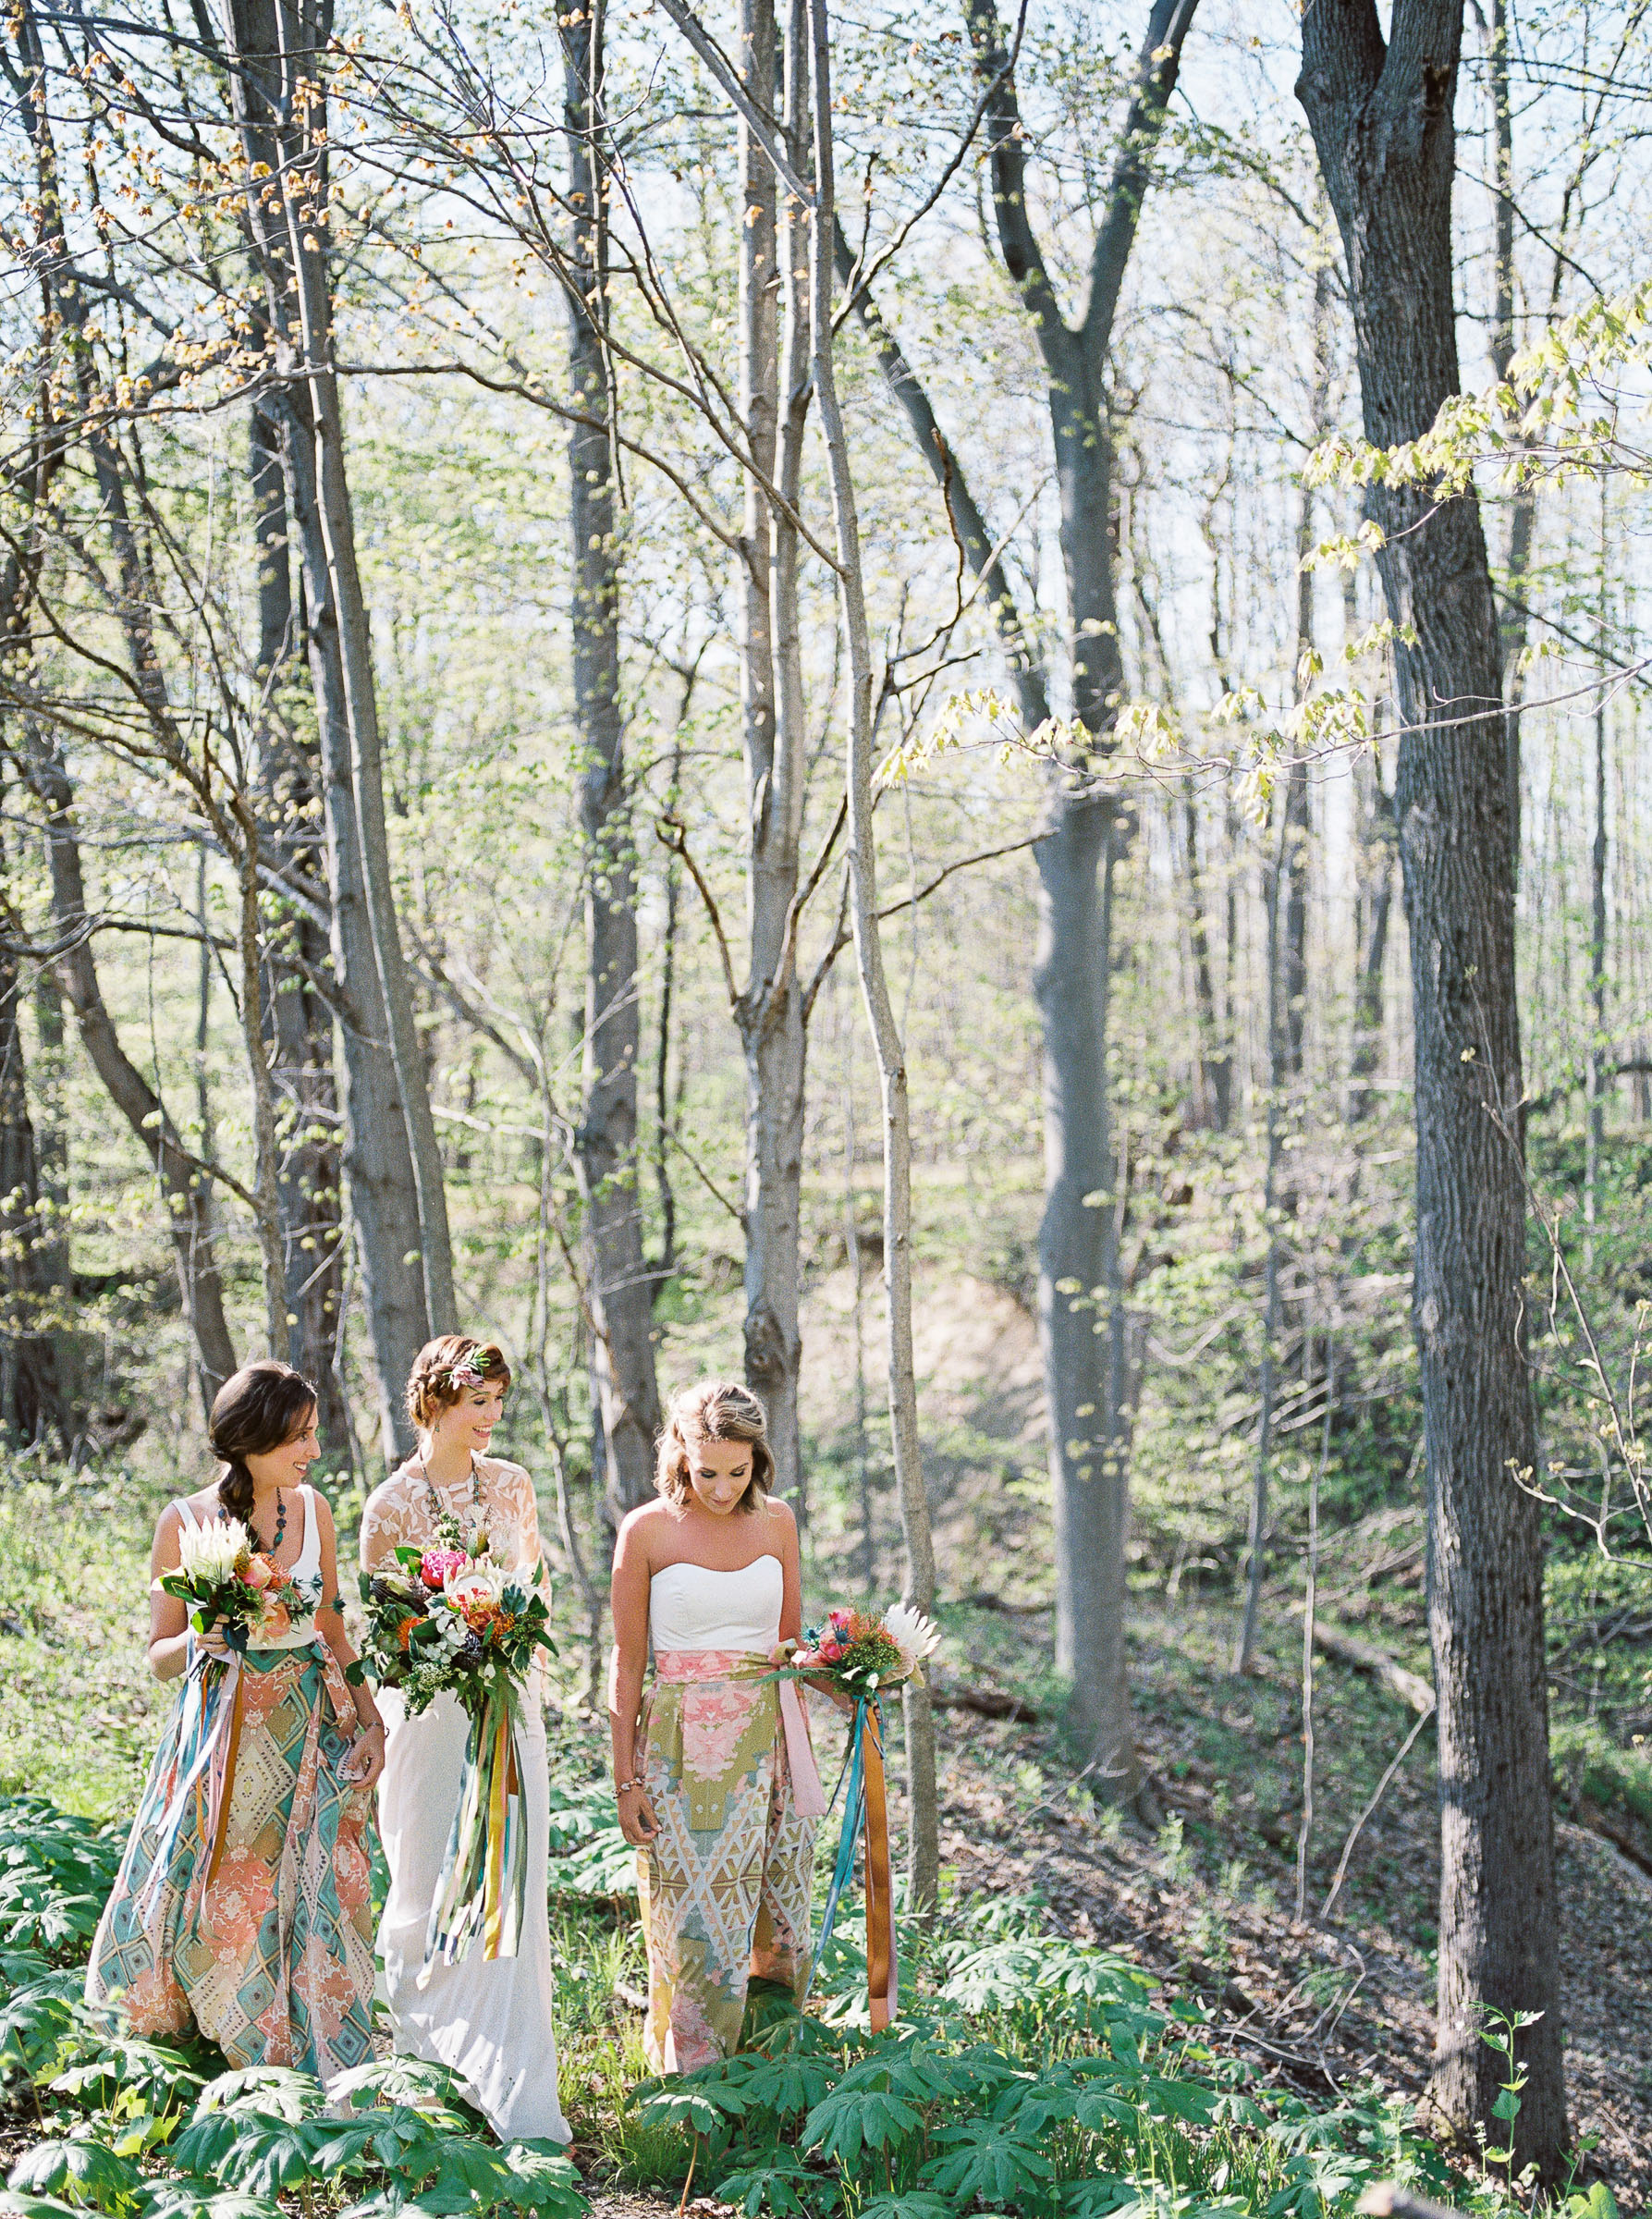 Alexandra-Elise-Photography-Ali-Reed-Film-Wedding-Photographer-New-York-Firelight-Camps-004